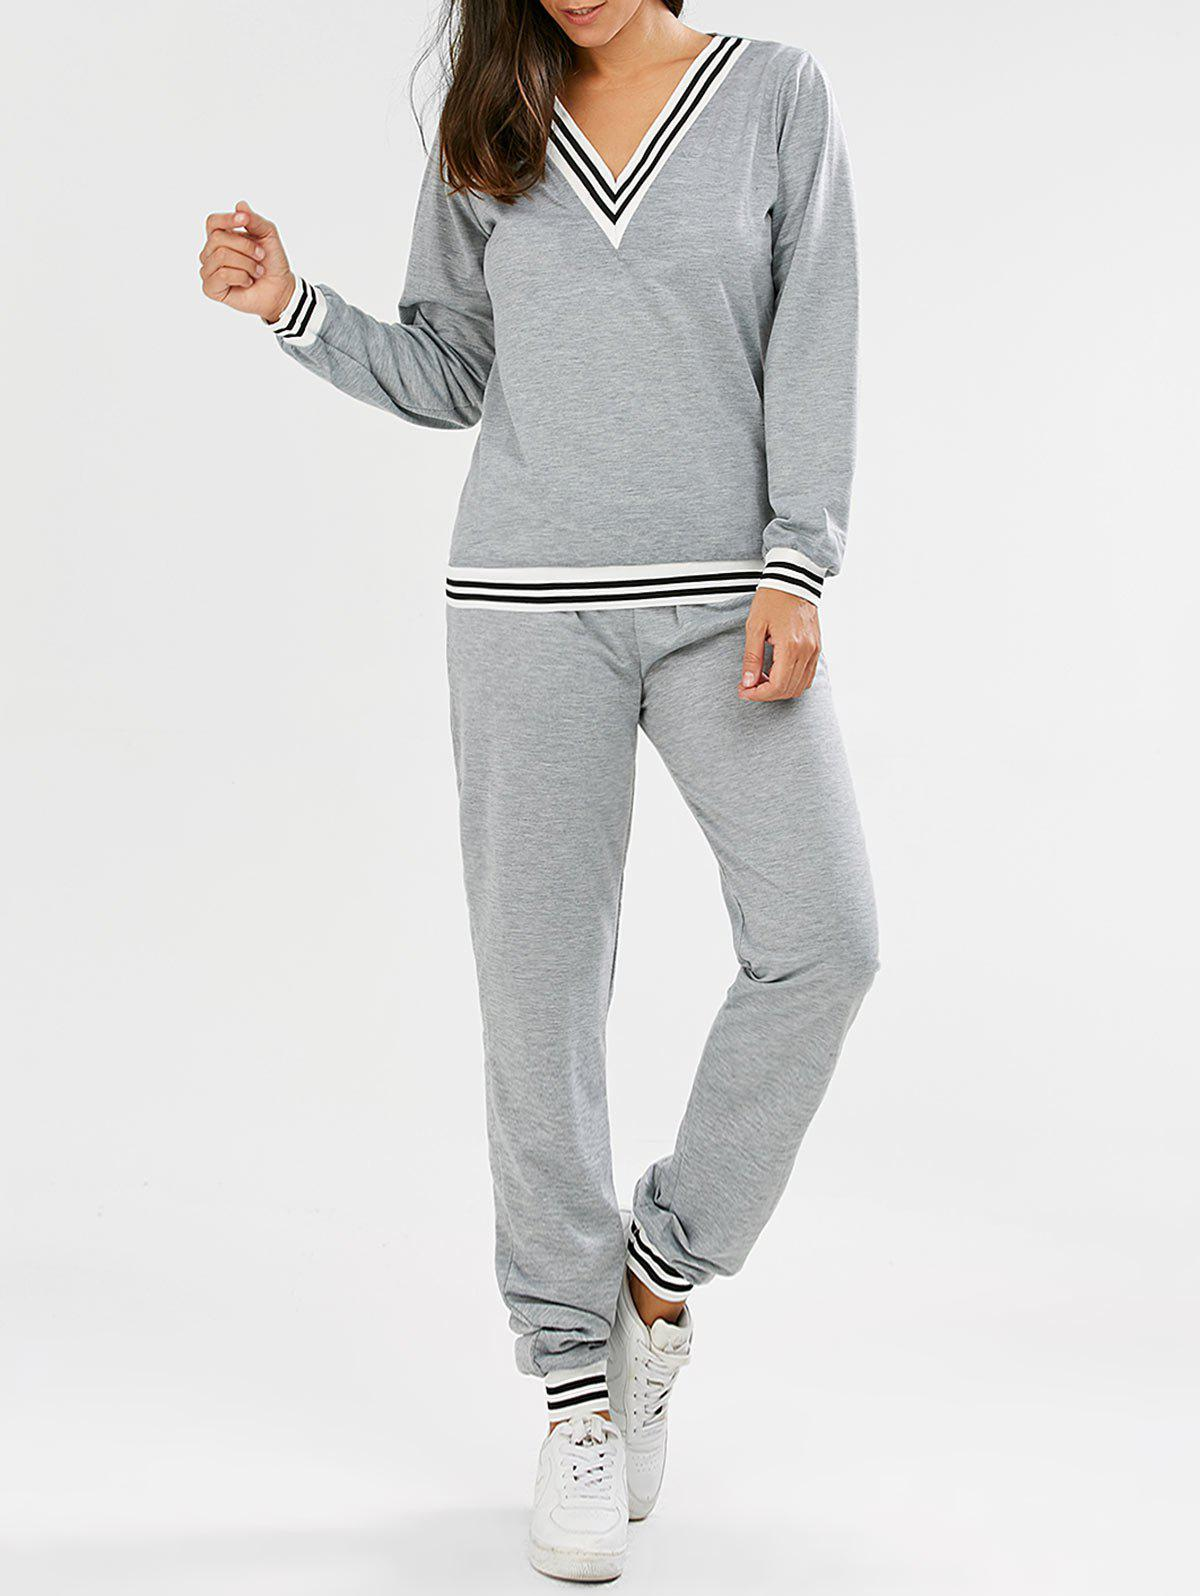 Fashionable V-Neck Long Sleeve Striped Sweatshirt + Fitted Pants Twinset For WomenWOMEN<br><br>Size: L; Color: GRAY; Style: Active; Length: Normal; Material: Polyester; Fit Type: Loose; Waist Type: Mid; Closure Type: Elastic Waist; Pattern Type: Striped; Pant Style: Pencil Pants; Weight: 0.4500kg; Package Contents: 1 x Sweatshirt 1 x Pants;